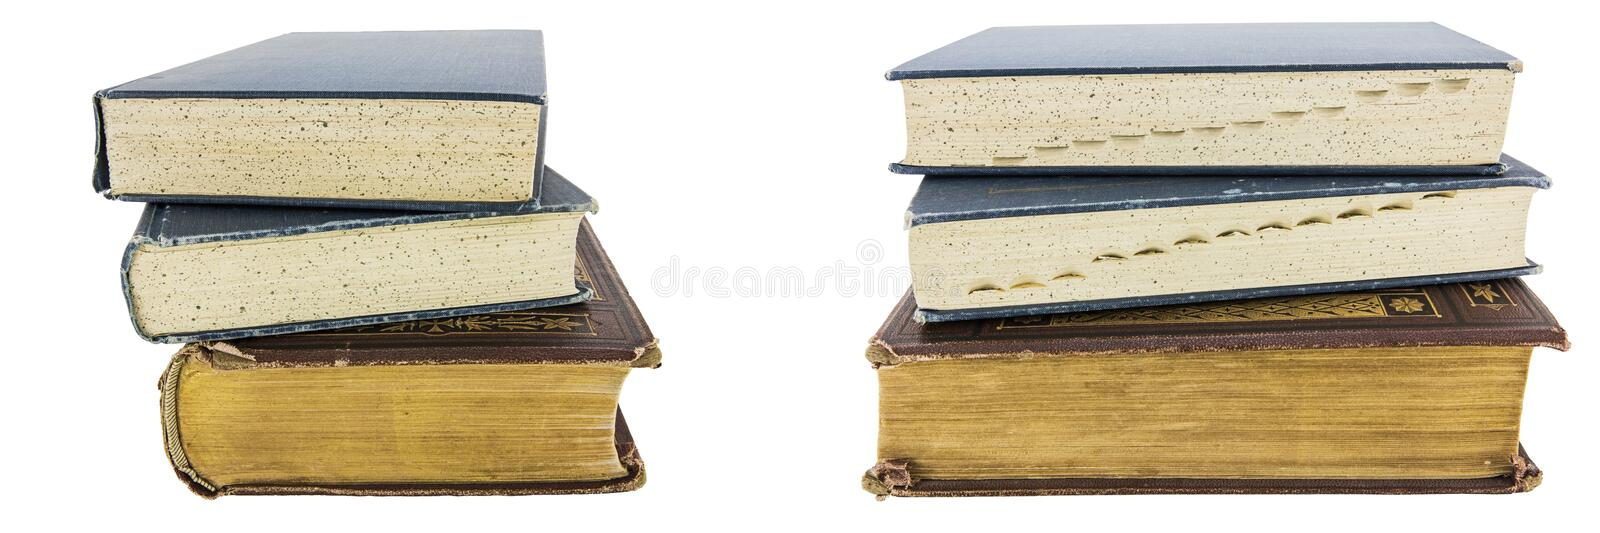 Old books pile reference history isolated collage stock photo download old books pile reference history isolated collage stock photo image of stack text ccuart Images